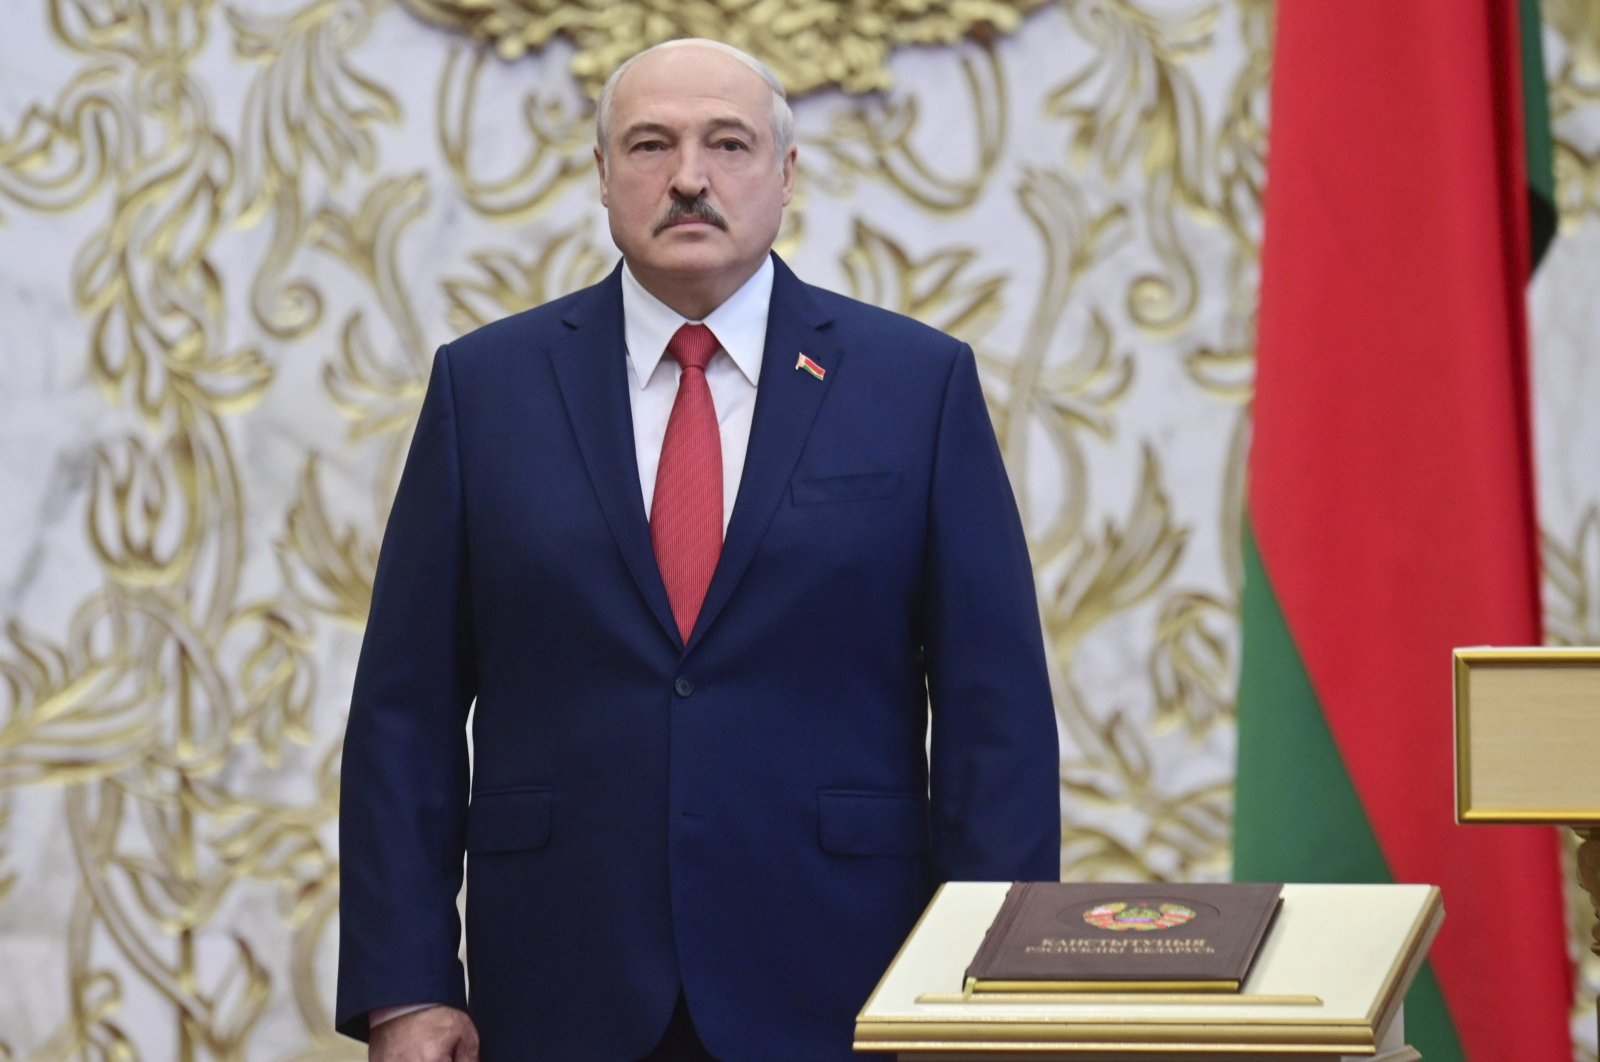 Belarus's Lukashenko holds secret inauguration after disputed election | Daily Sabah